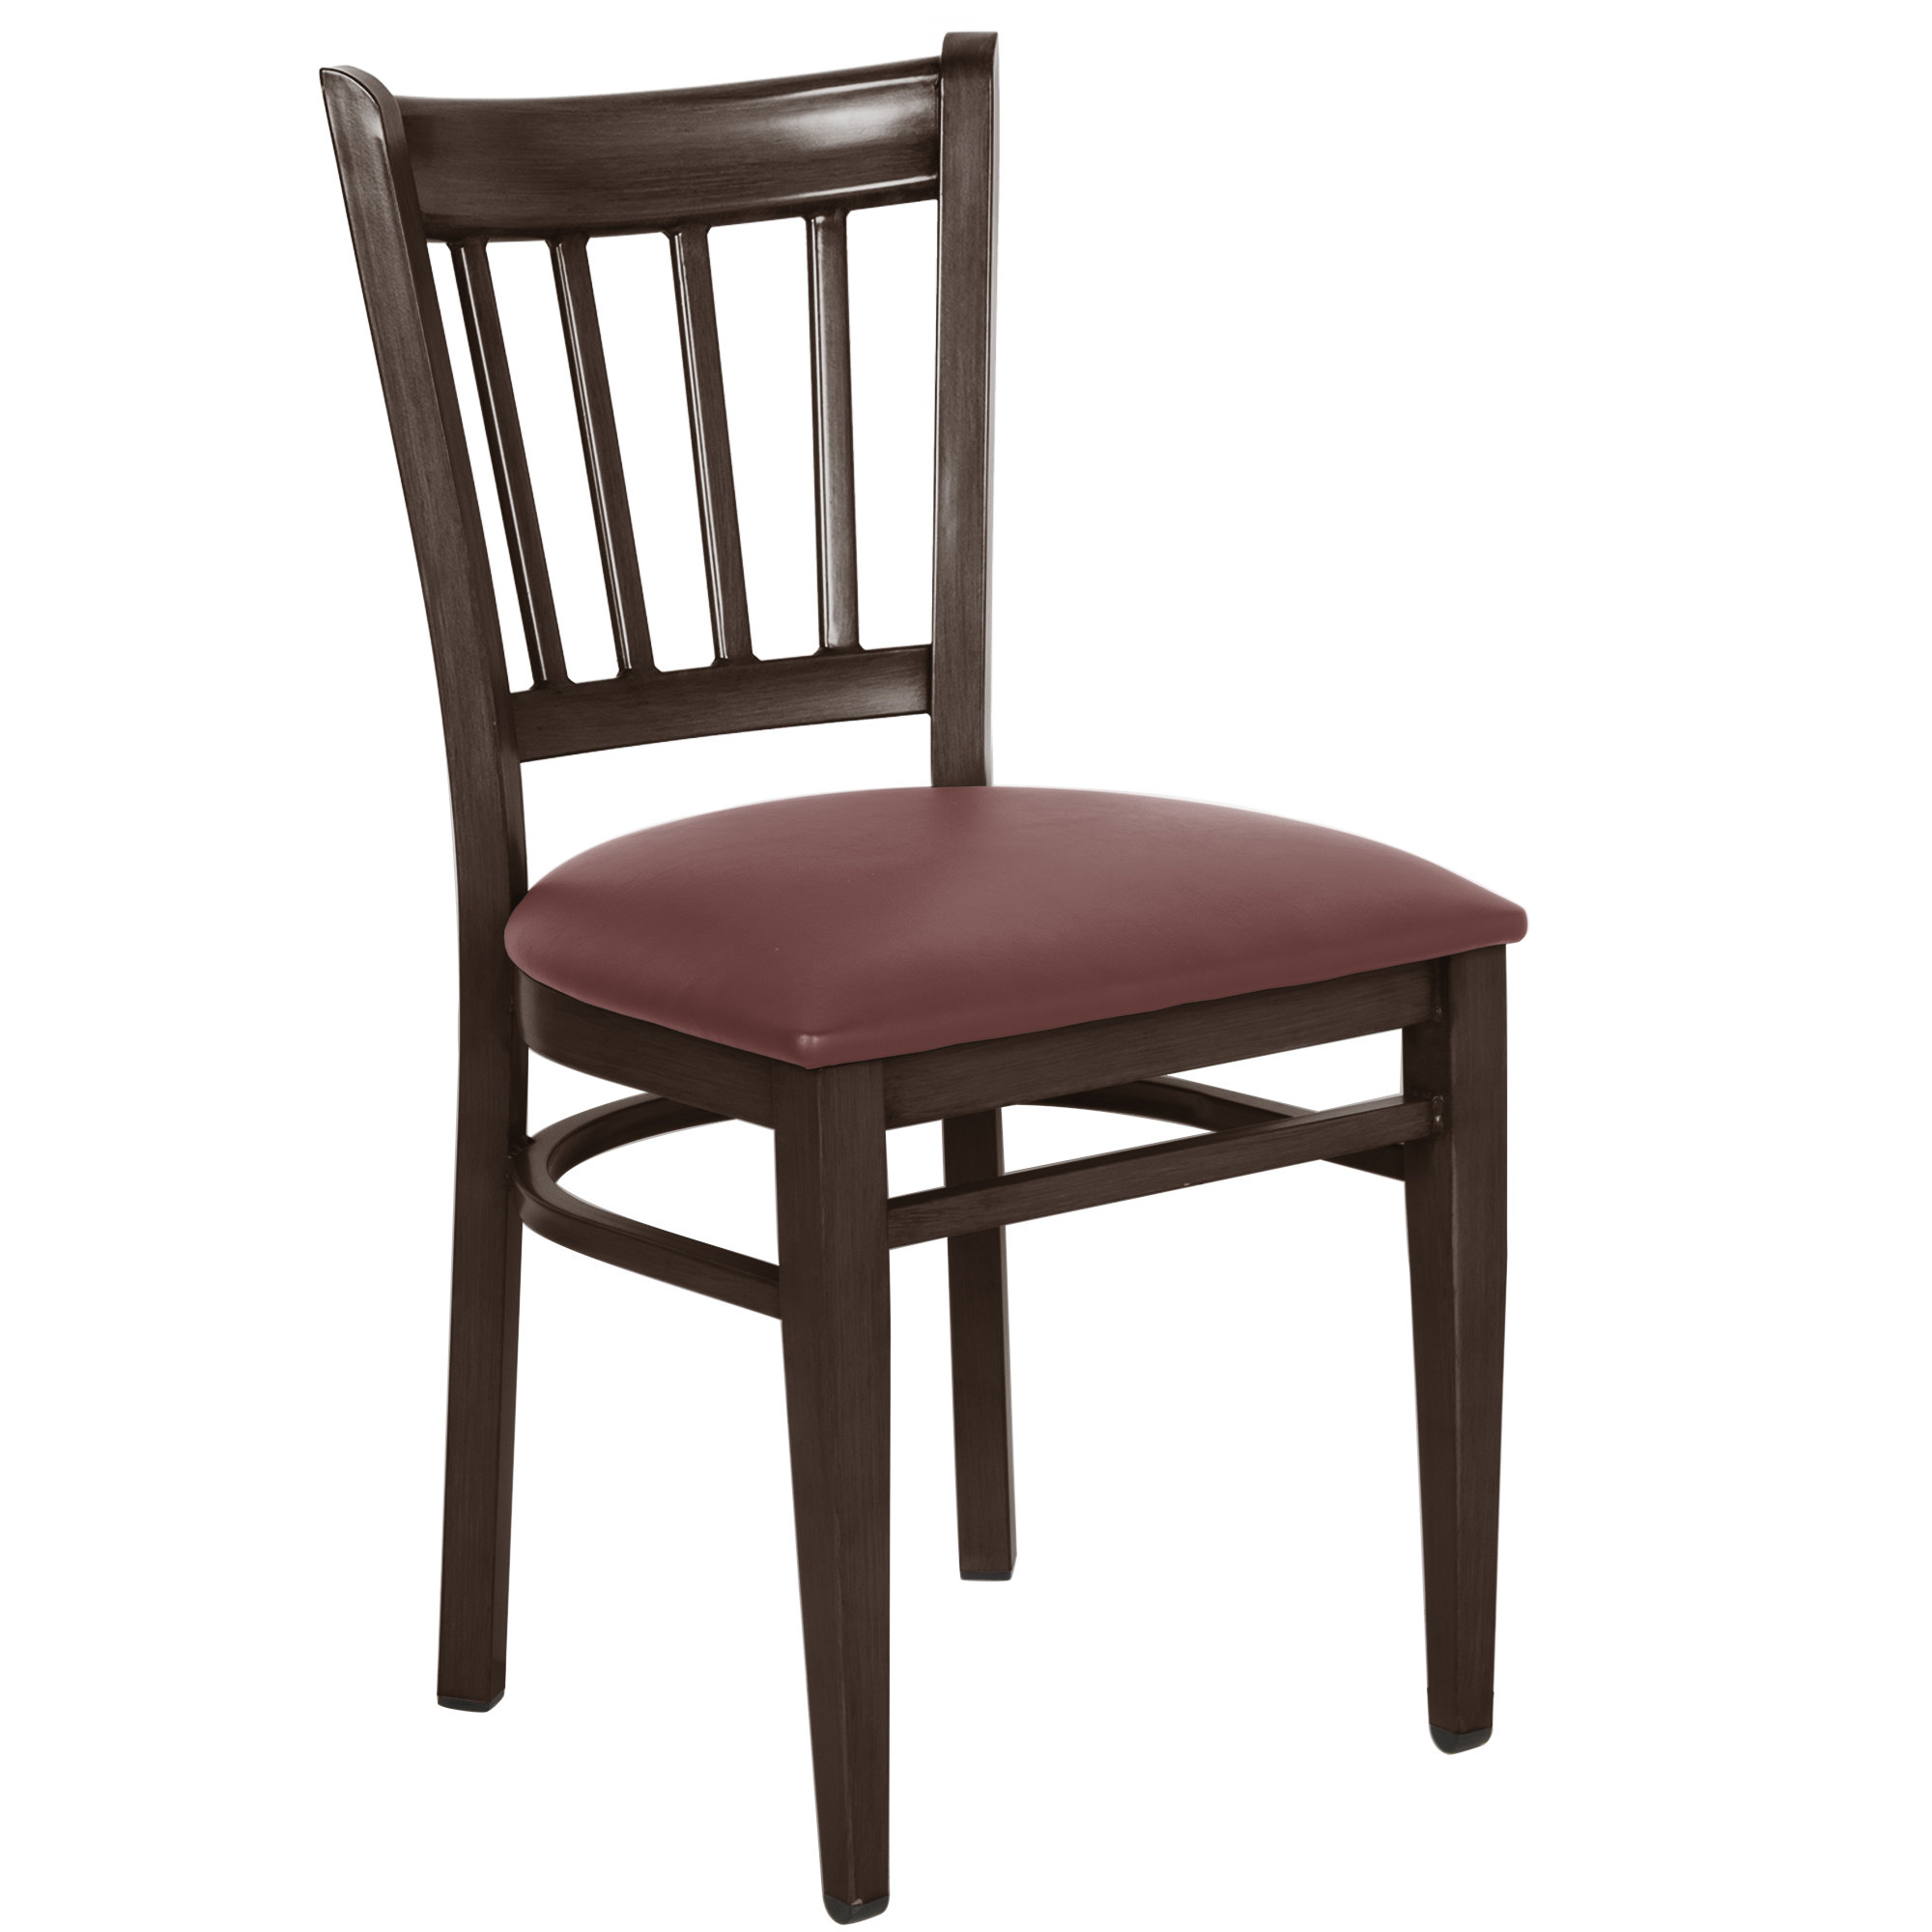 #137 - Slat Back Design Metal Restaurant Chair with Walnut Wood Grain Finish and Burgundy Vinyl Seat